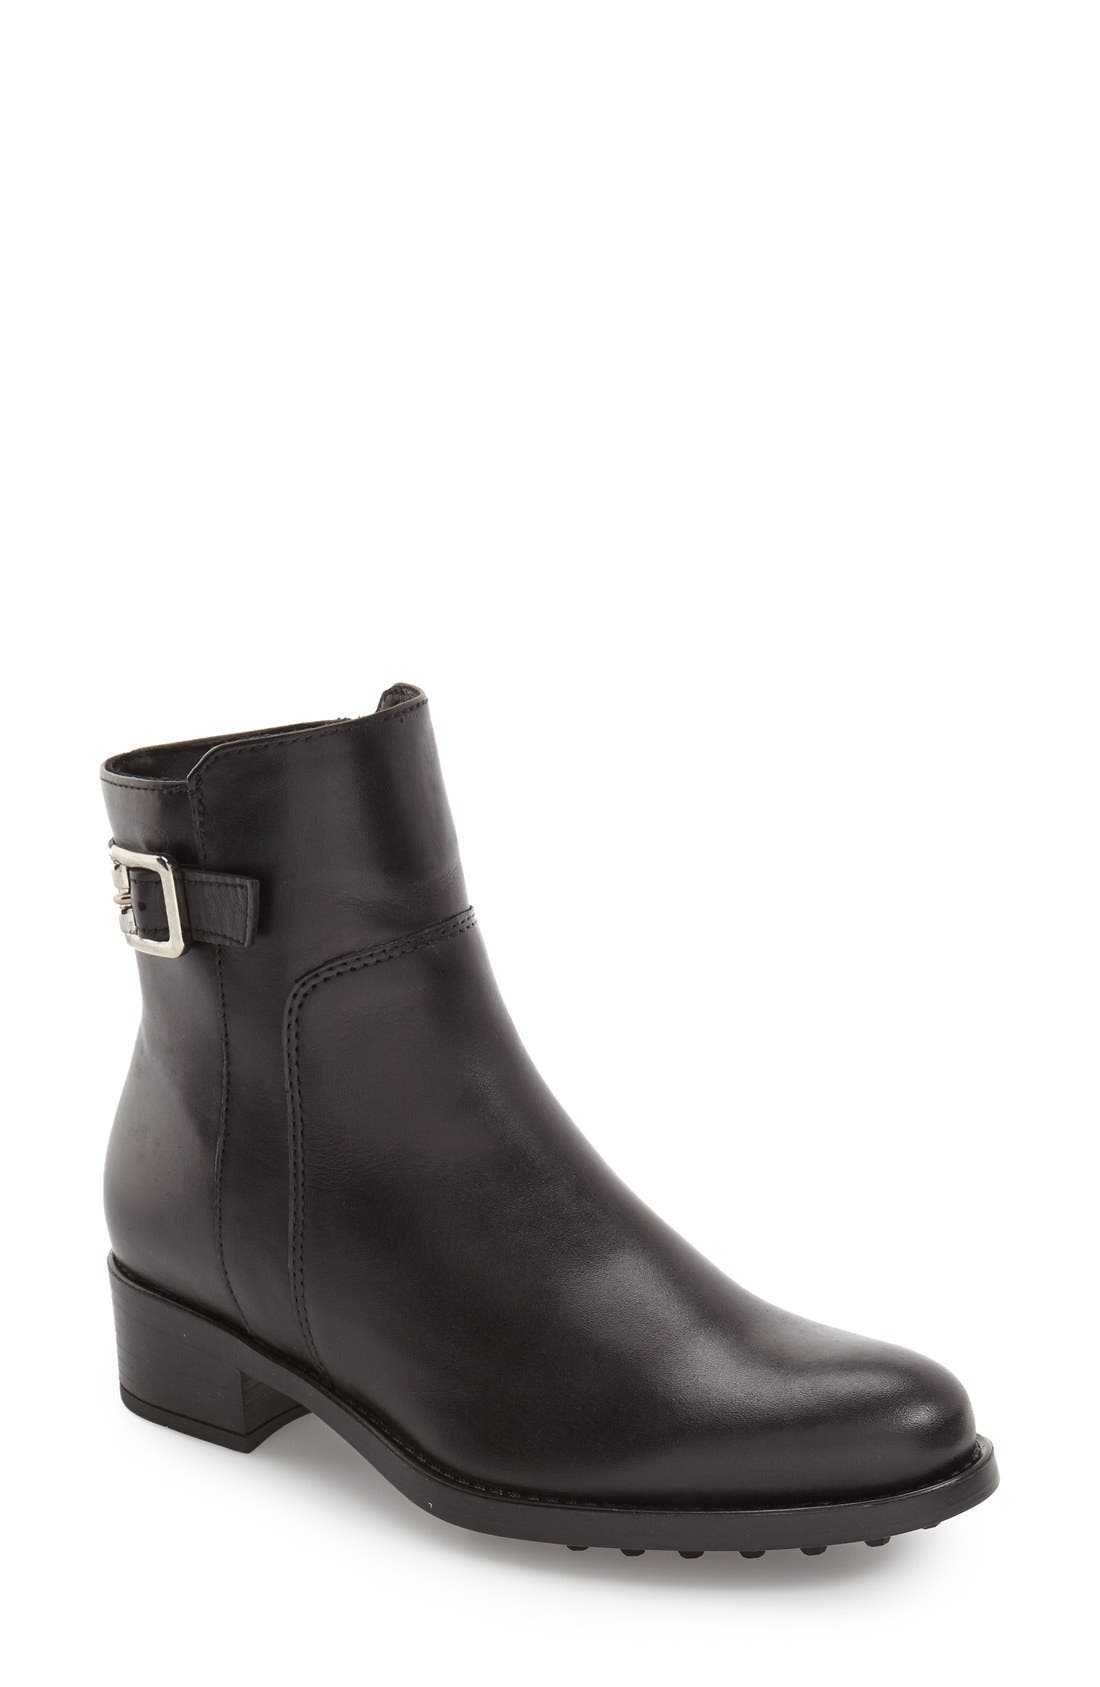 LA CANADIENNE 'Shelby' Waterproof Bootie in Black Leather